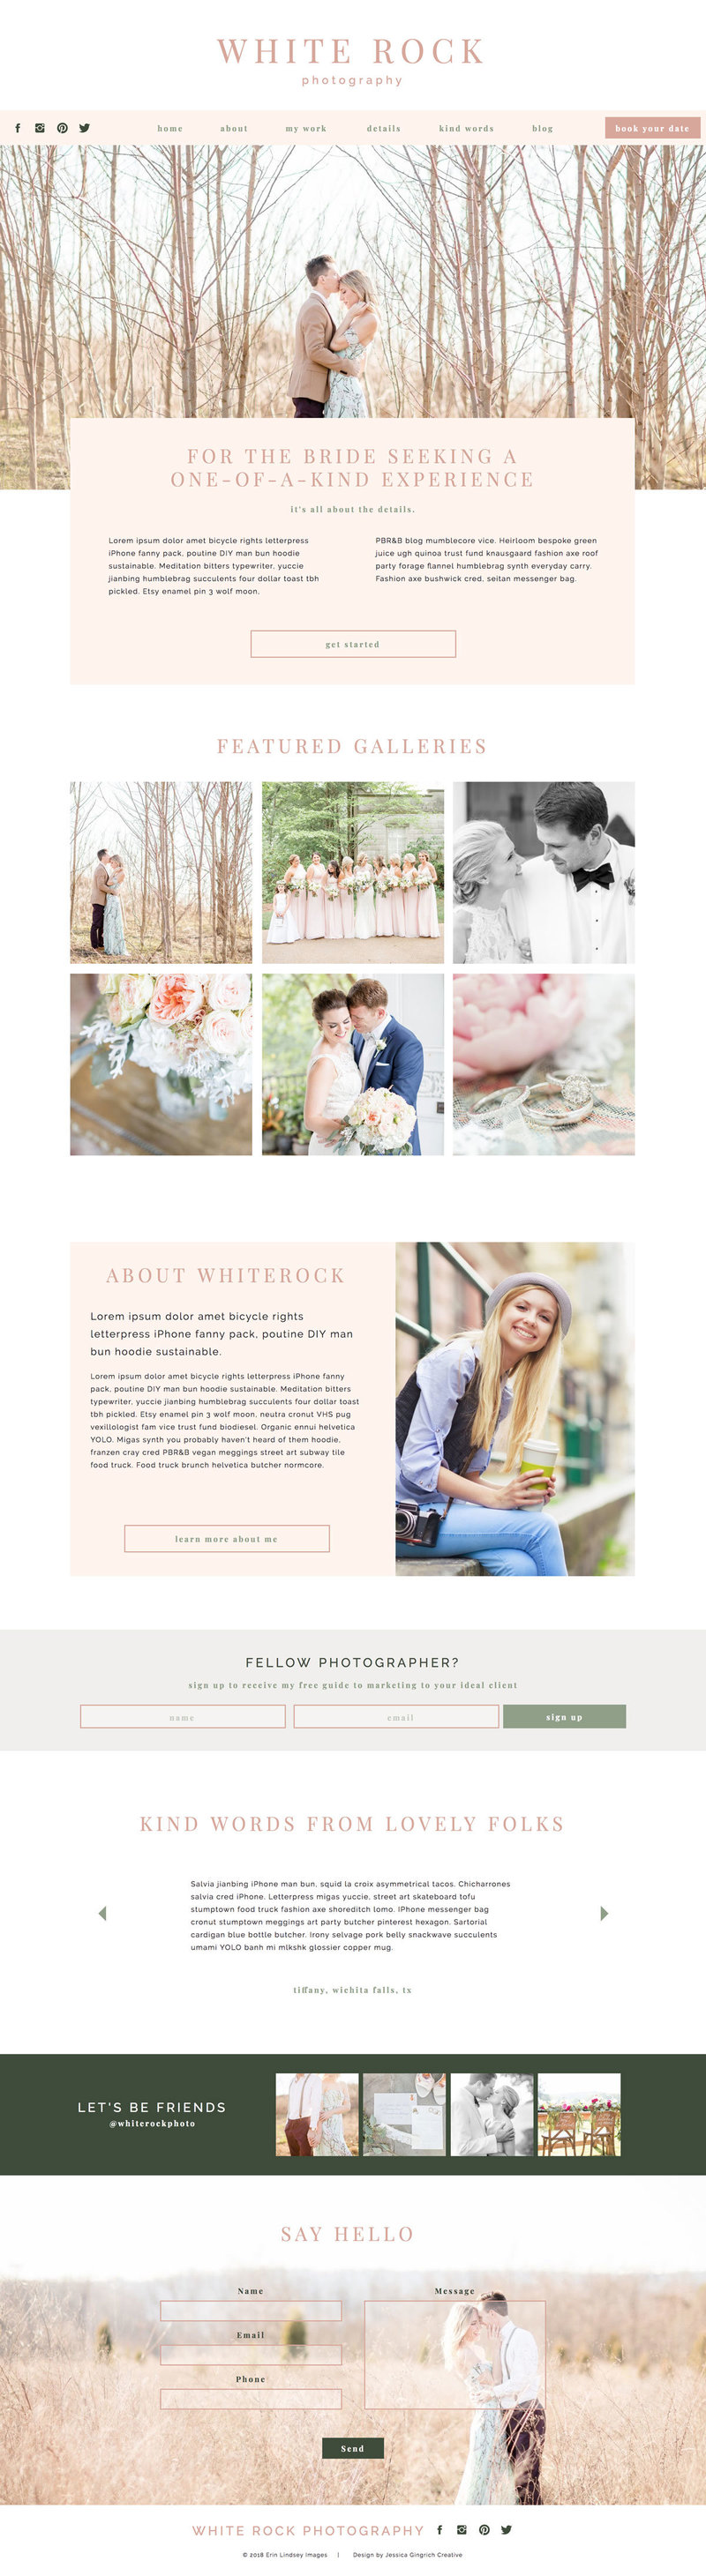 Whiterock Showit Website Template Desktop